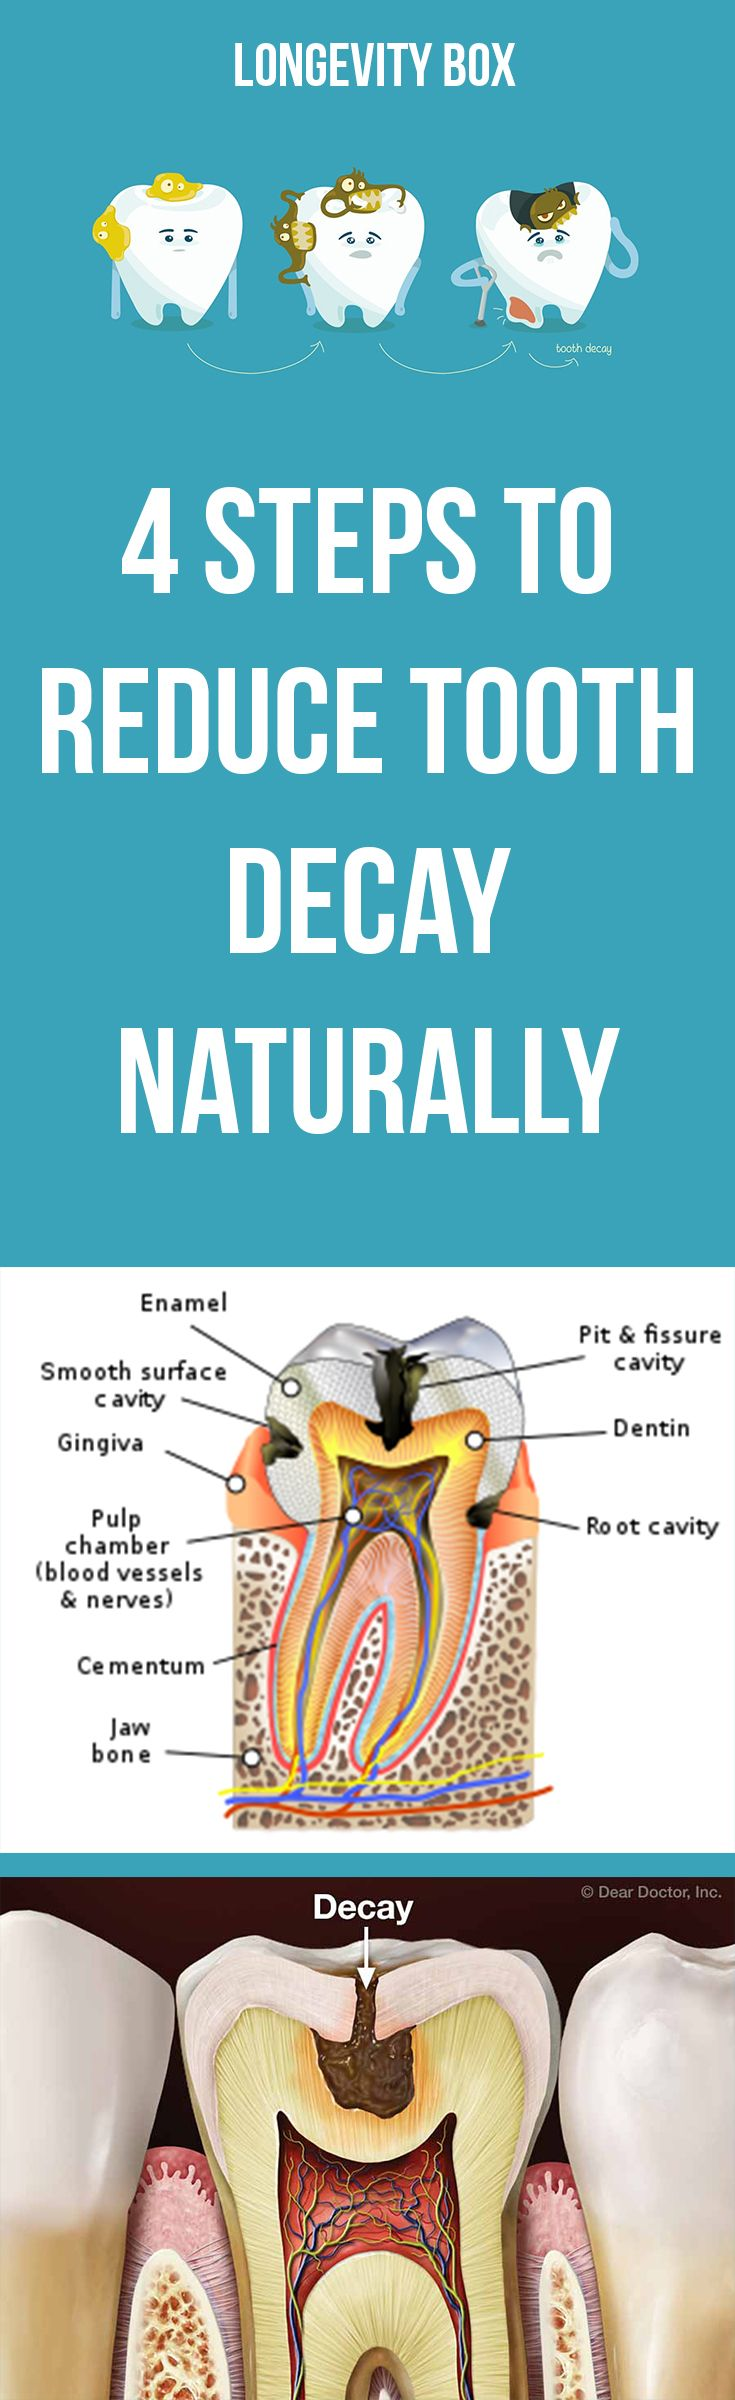 4 steps to reduce tooth decay naturally